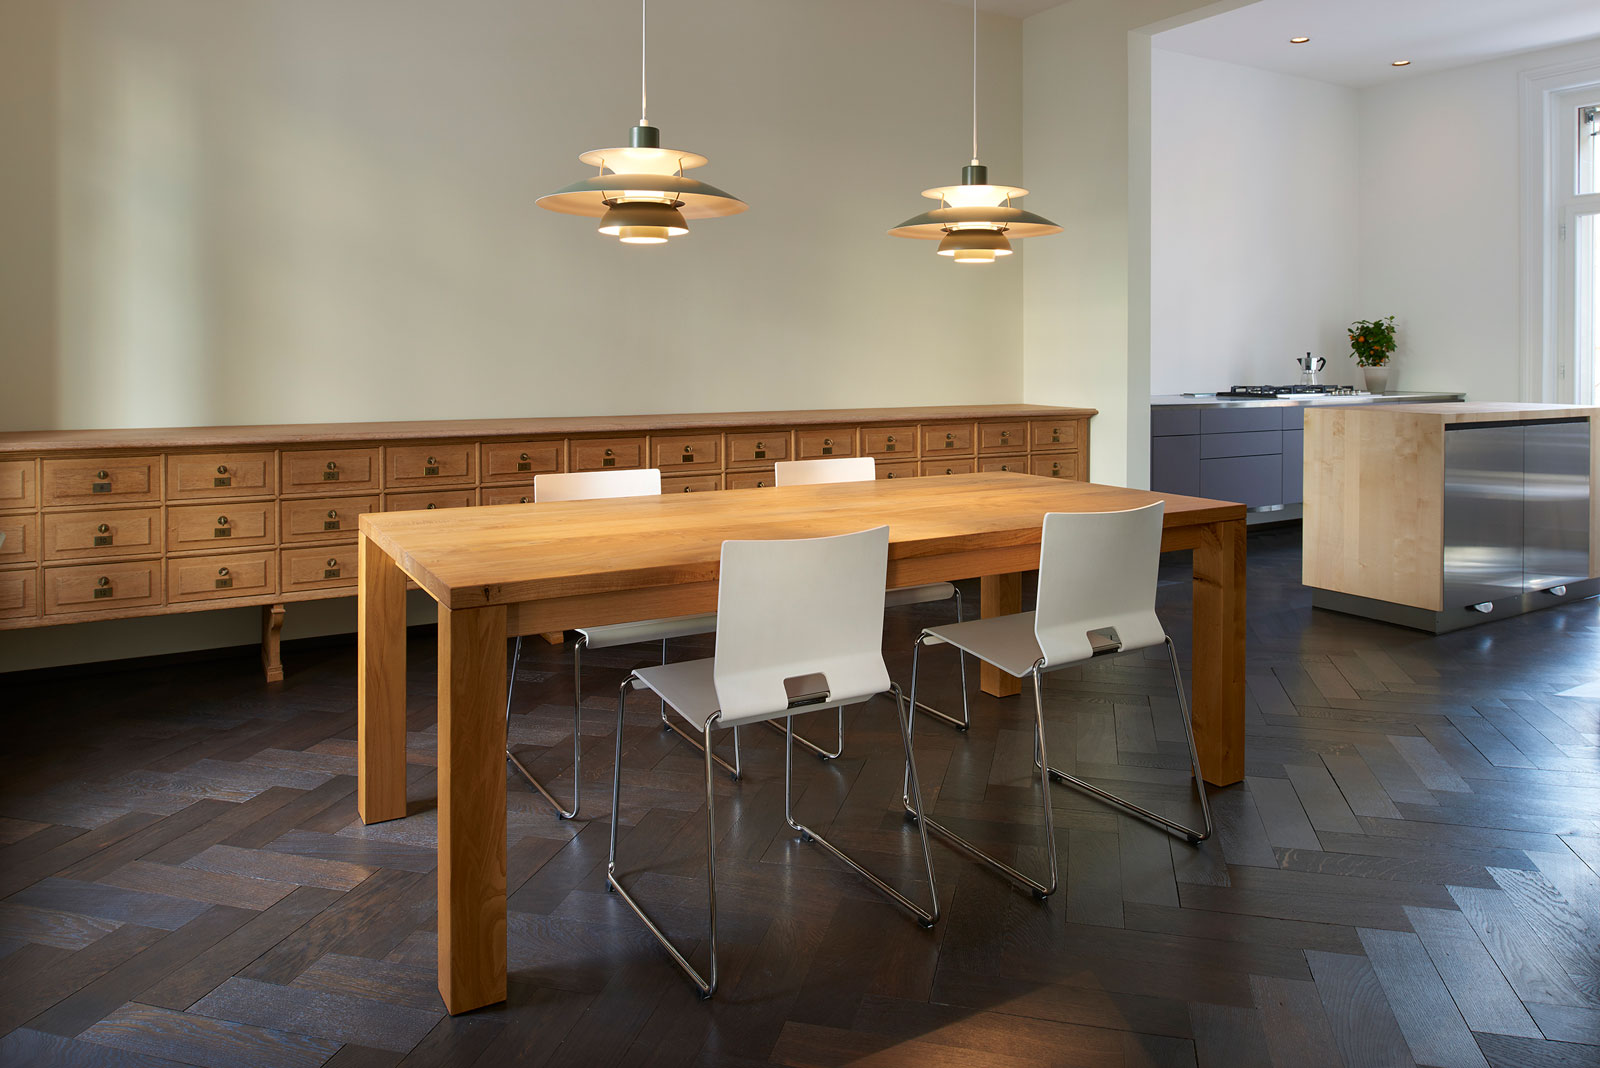 Dining table in chestnut solid; Design carpenter, photo Alain Bucher